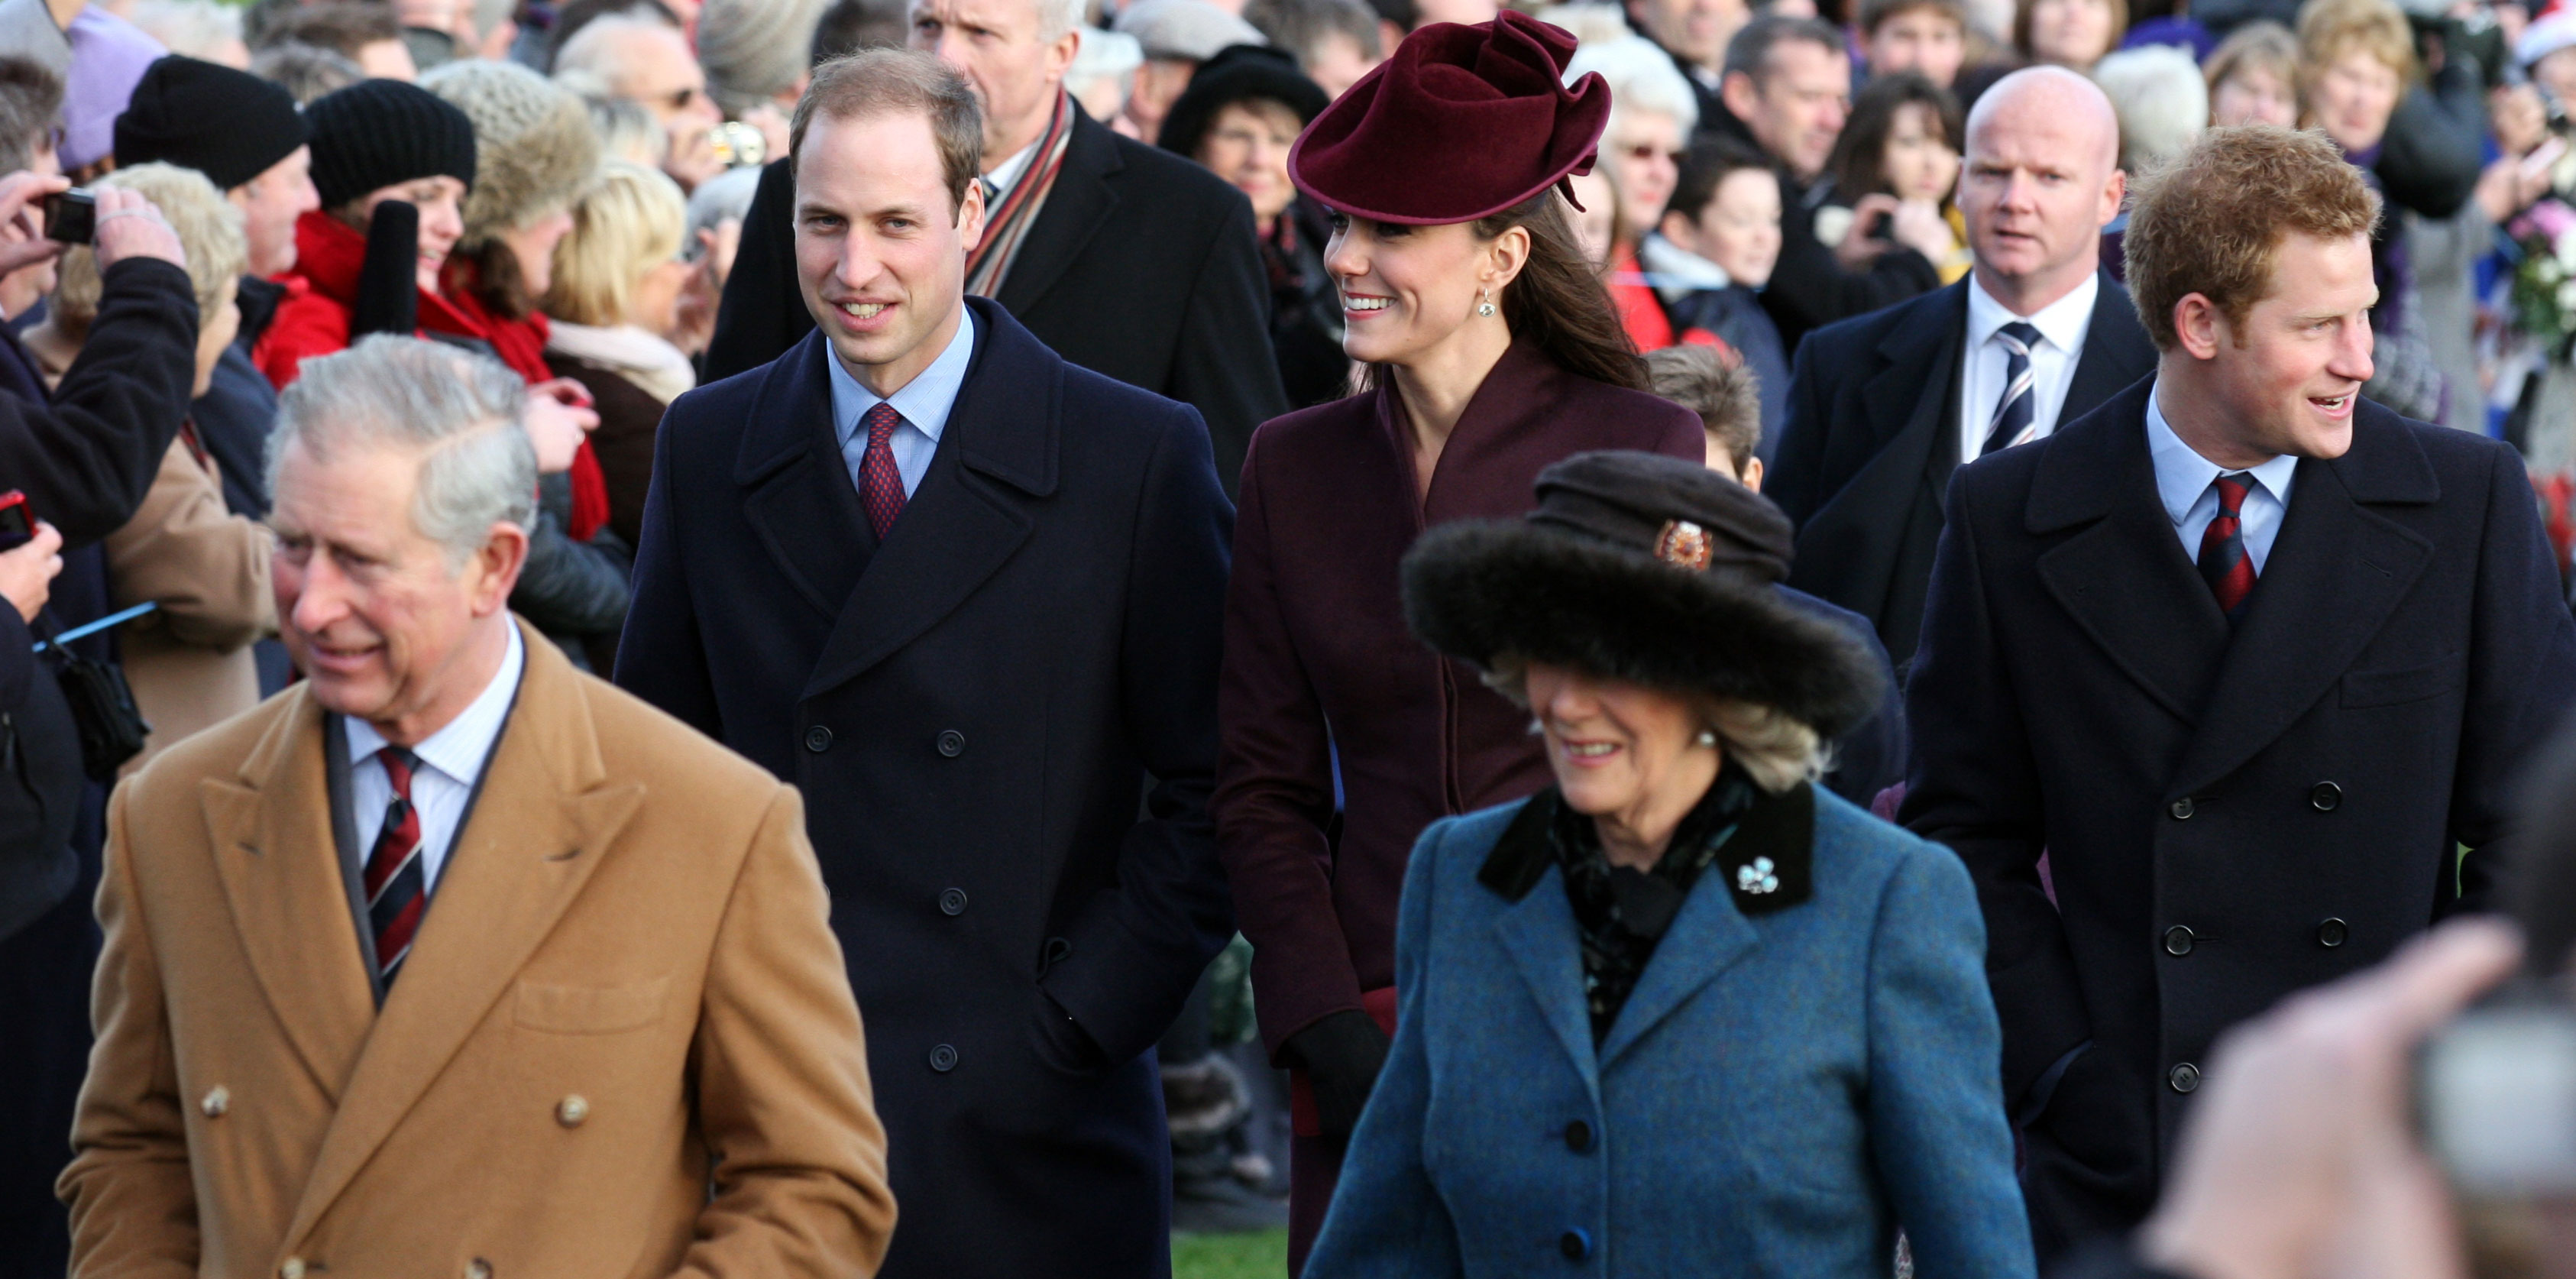 The Royal Family attend church on Christmas Day in Sandringham